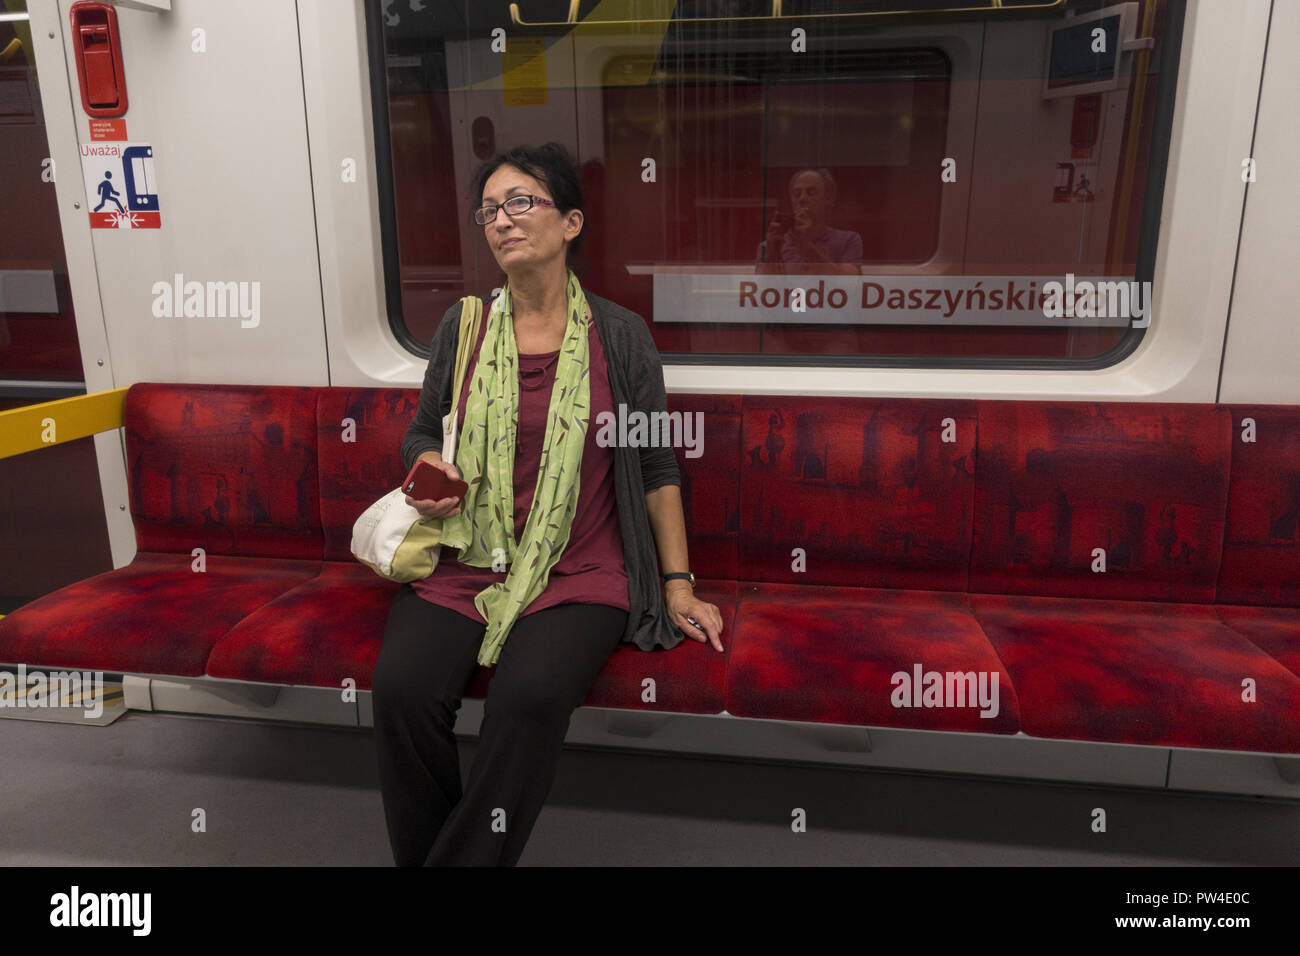 The Warsaw Metro  has upholstered seats in its train cars. - Stock Image